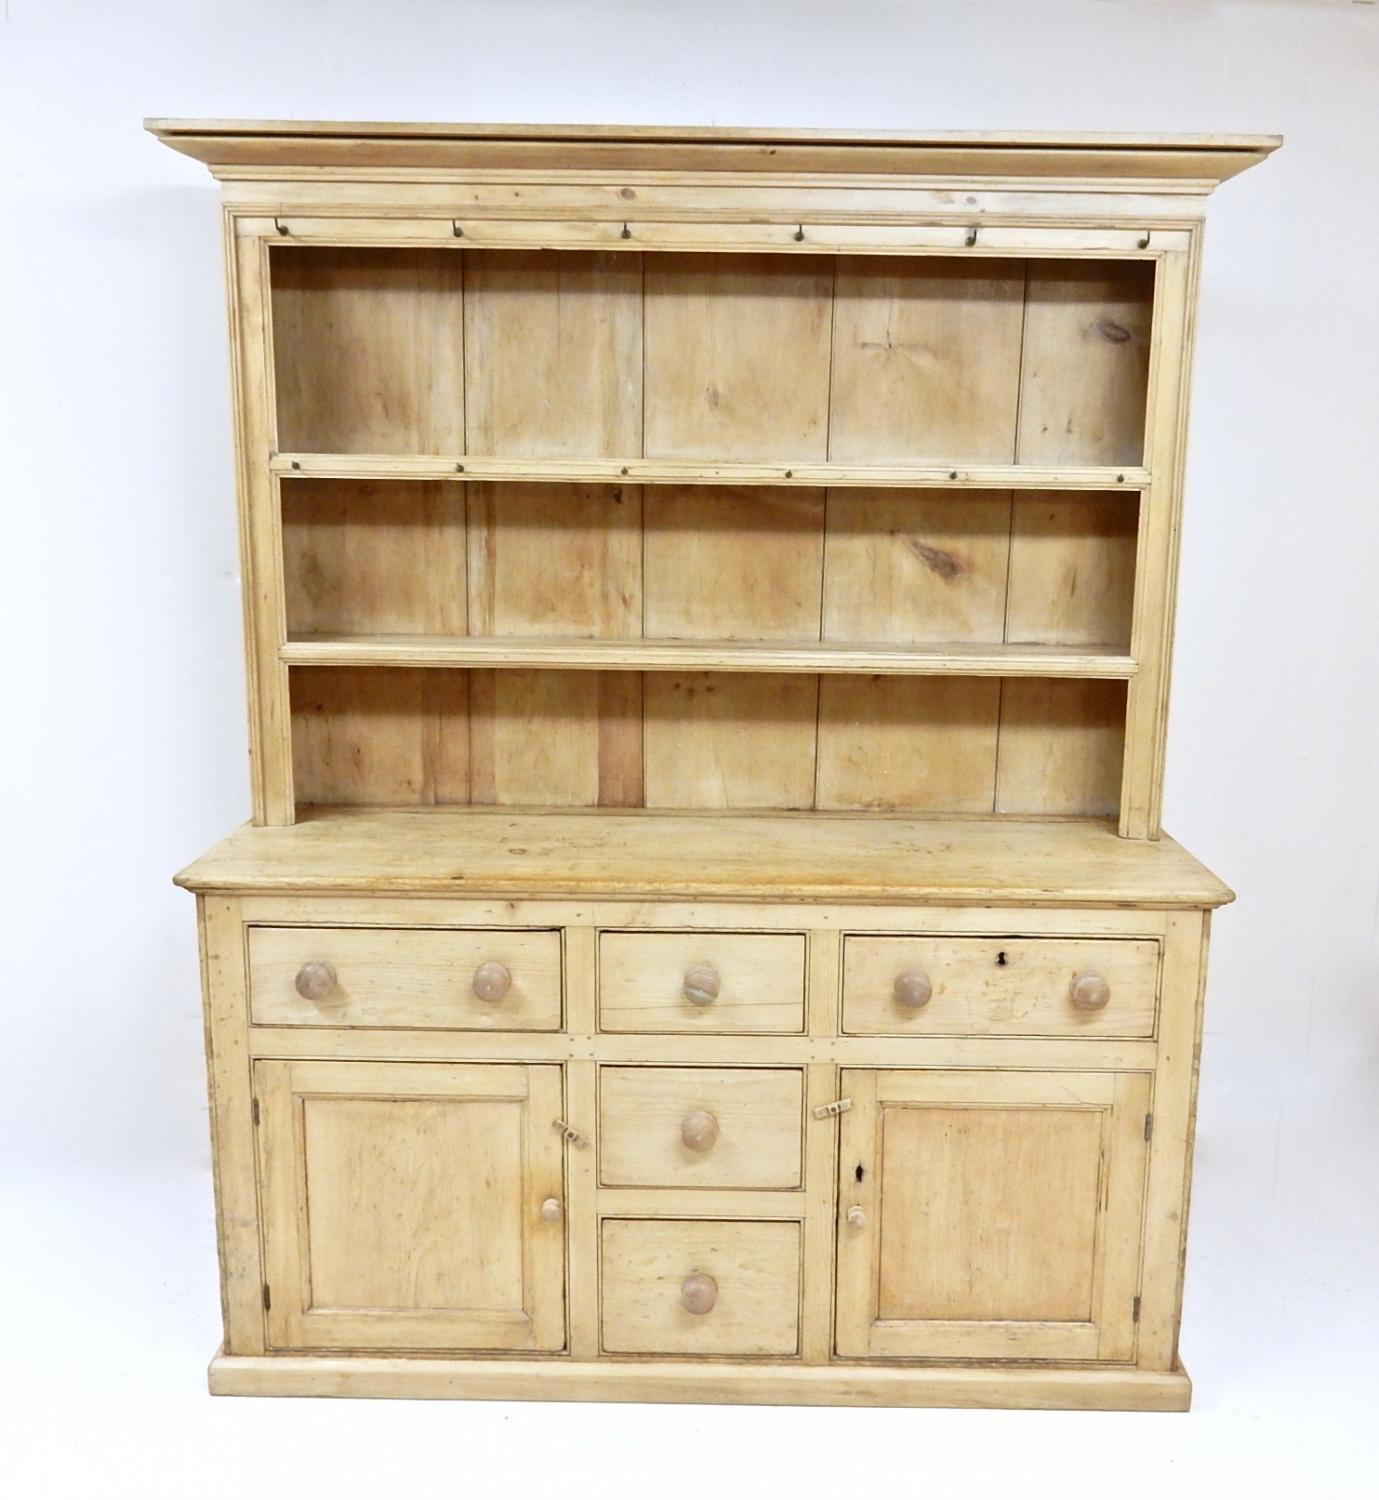 Antique Pine Kitchen Dresser In Sold